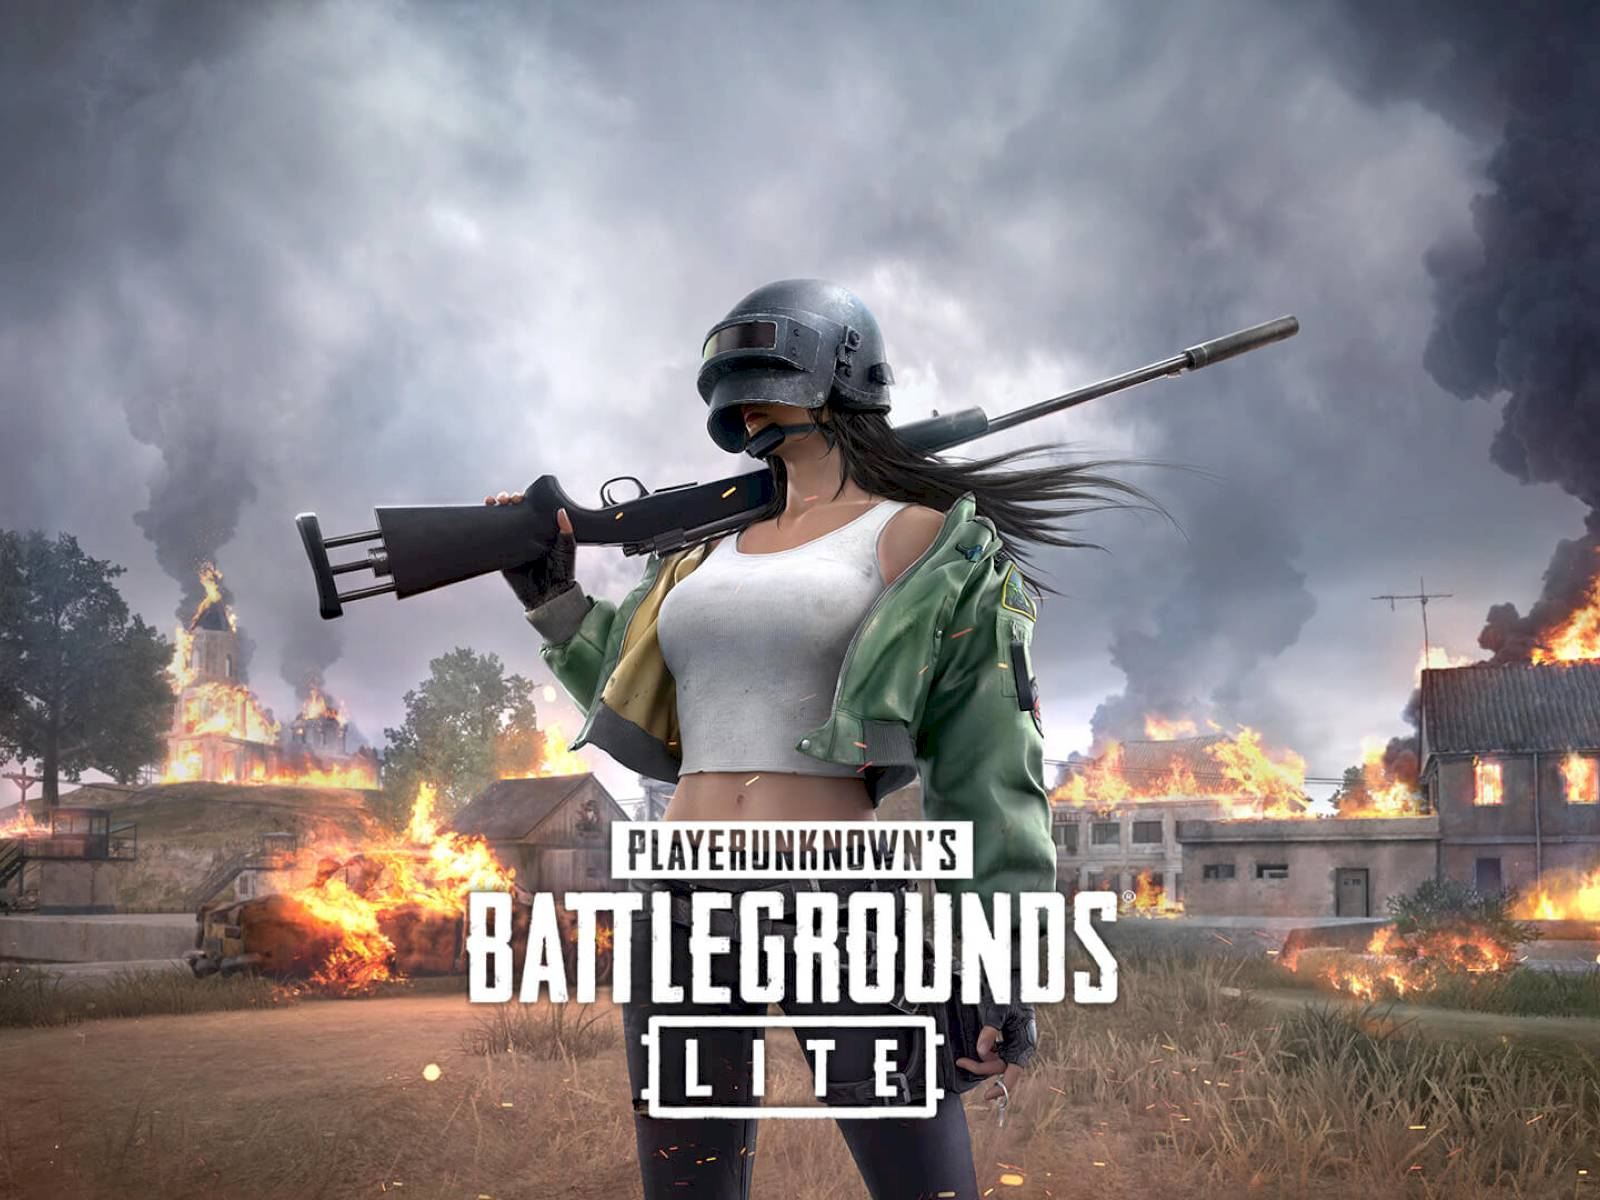 Pubg Lite 2890 + 1734 Battle Coin